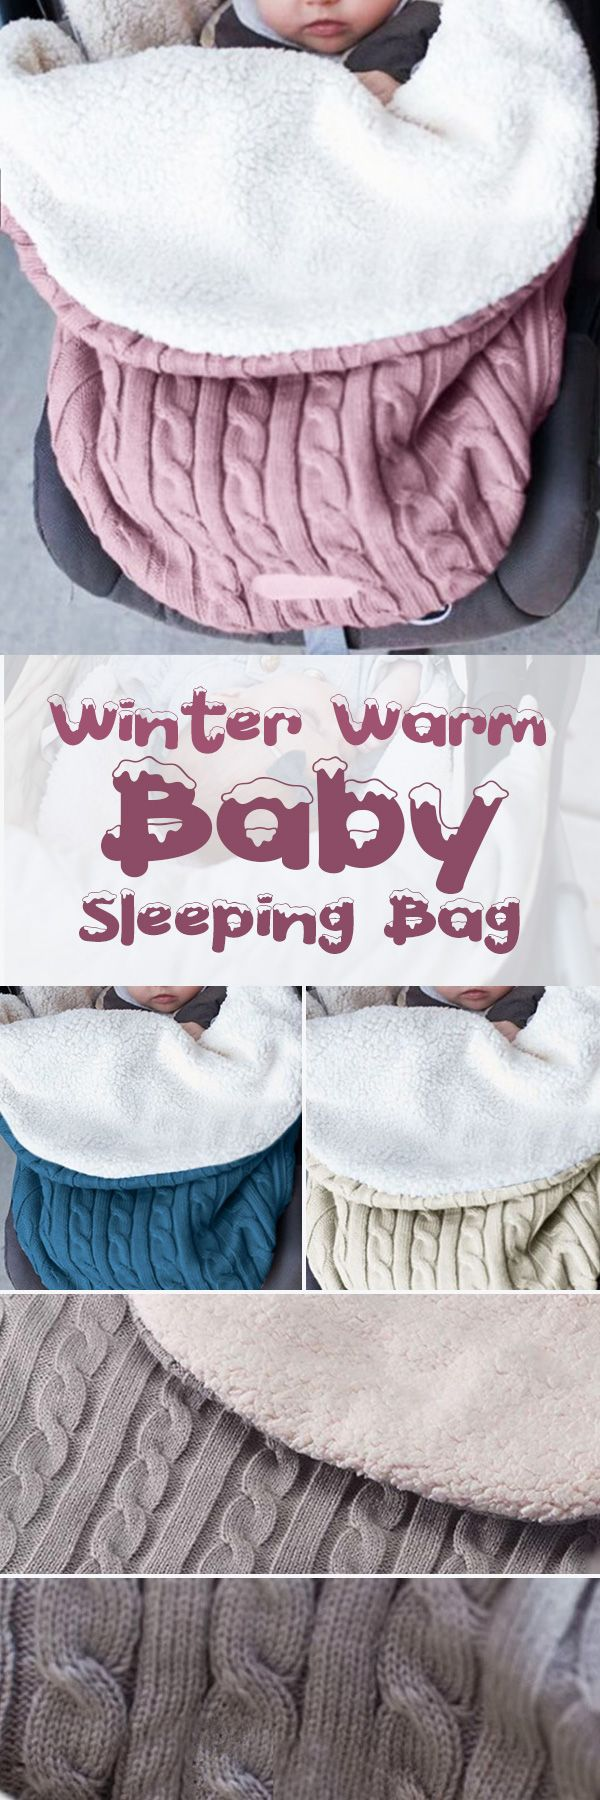 US$17.99 -Baby Sleeping Bag Winter Warm Wool Knitted Hoodie Swaddle Wrap Cute Soft Infant Blanket#newchic#baby#crochet